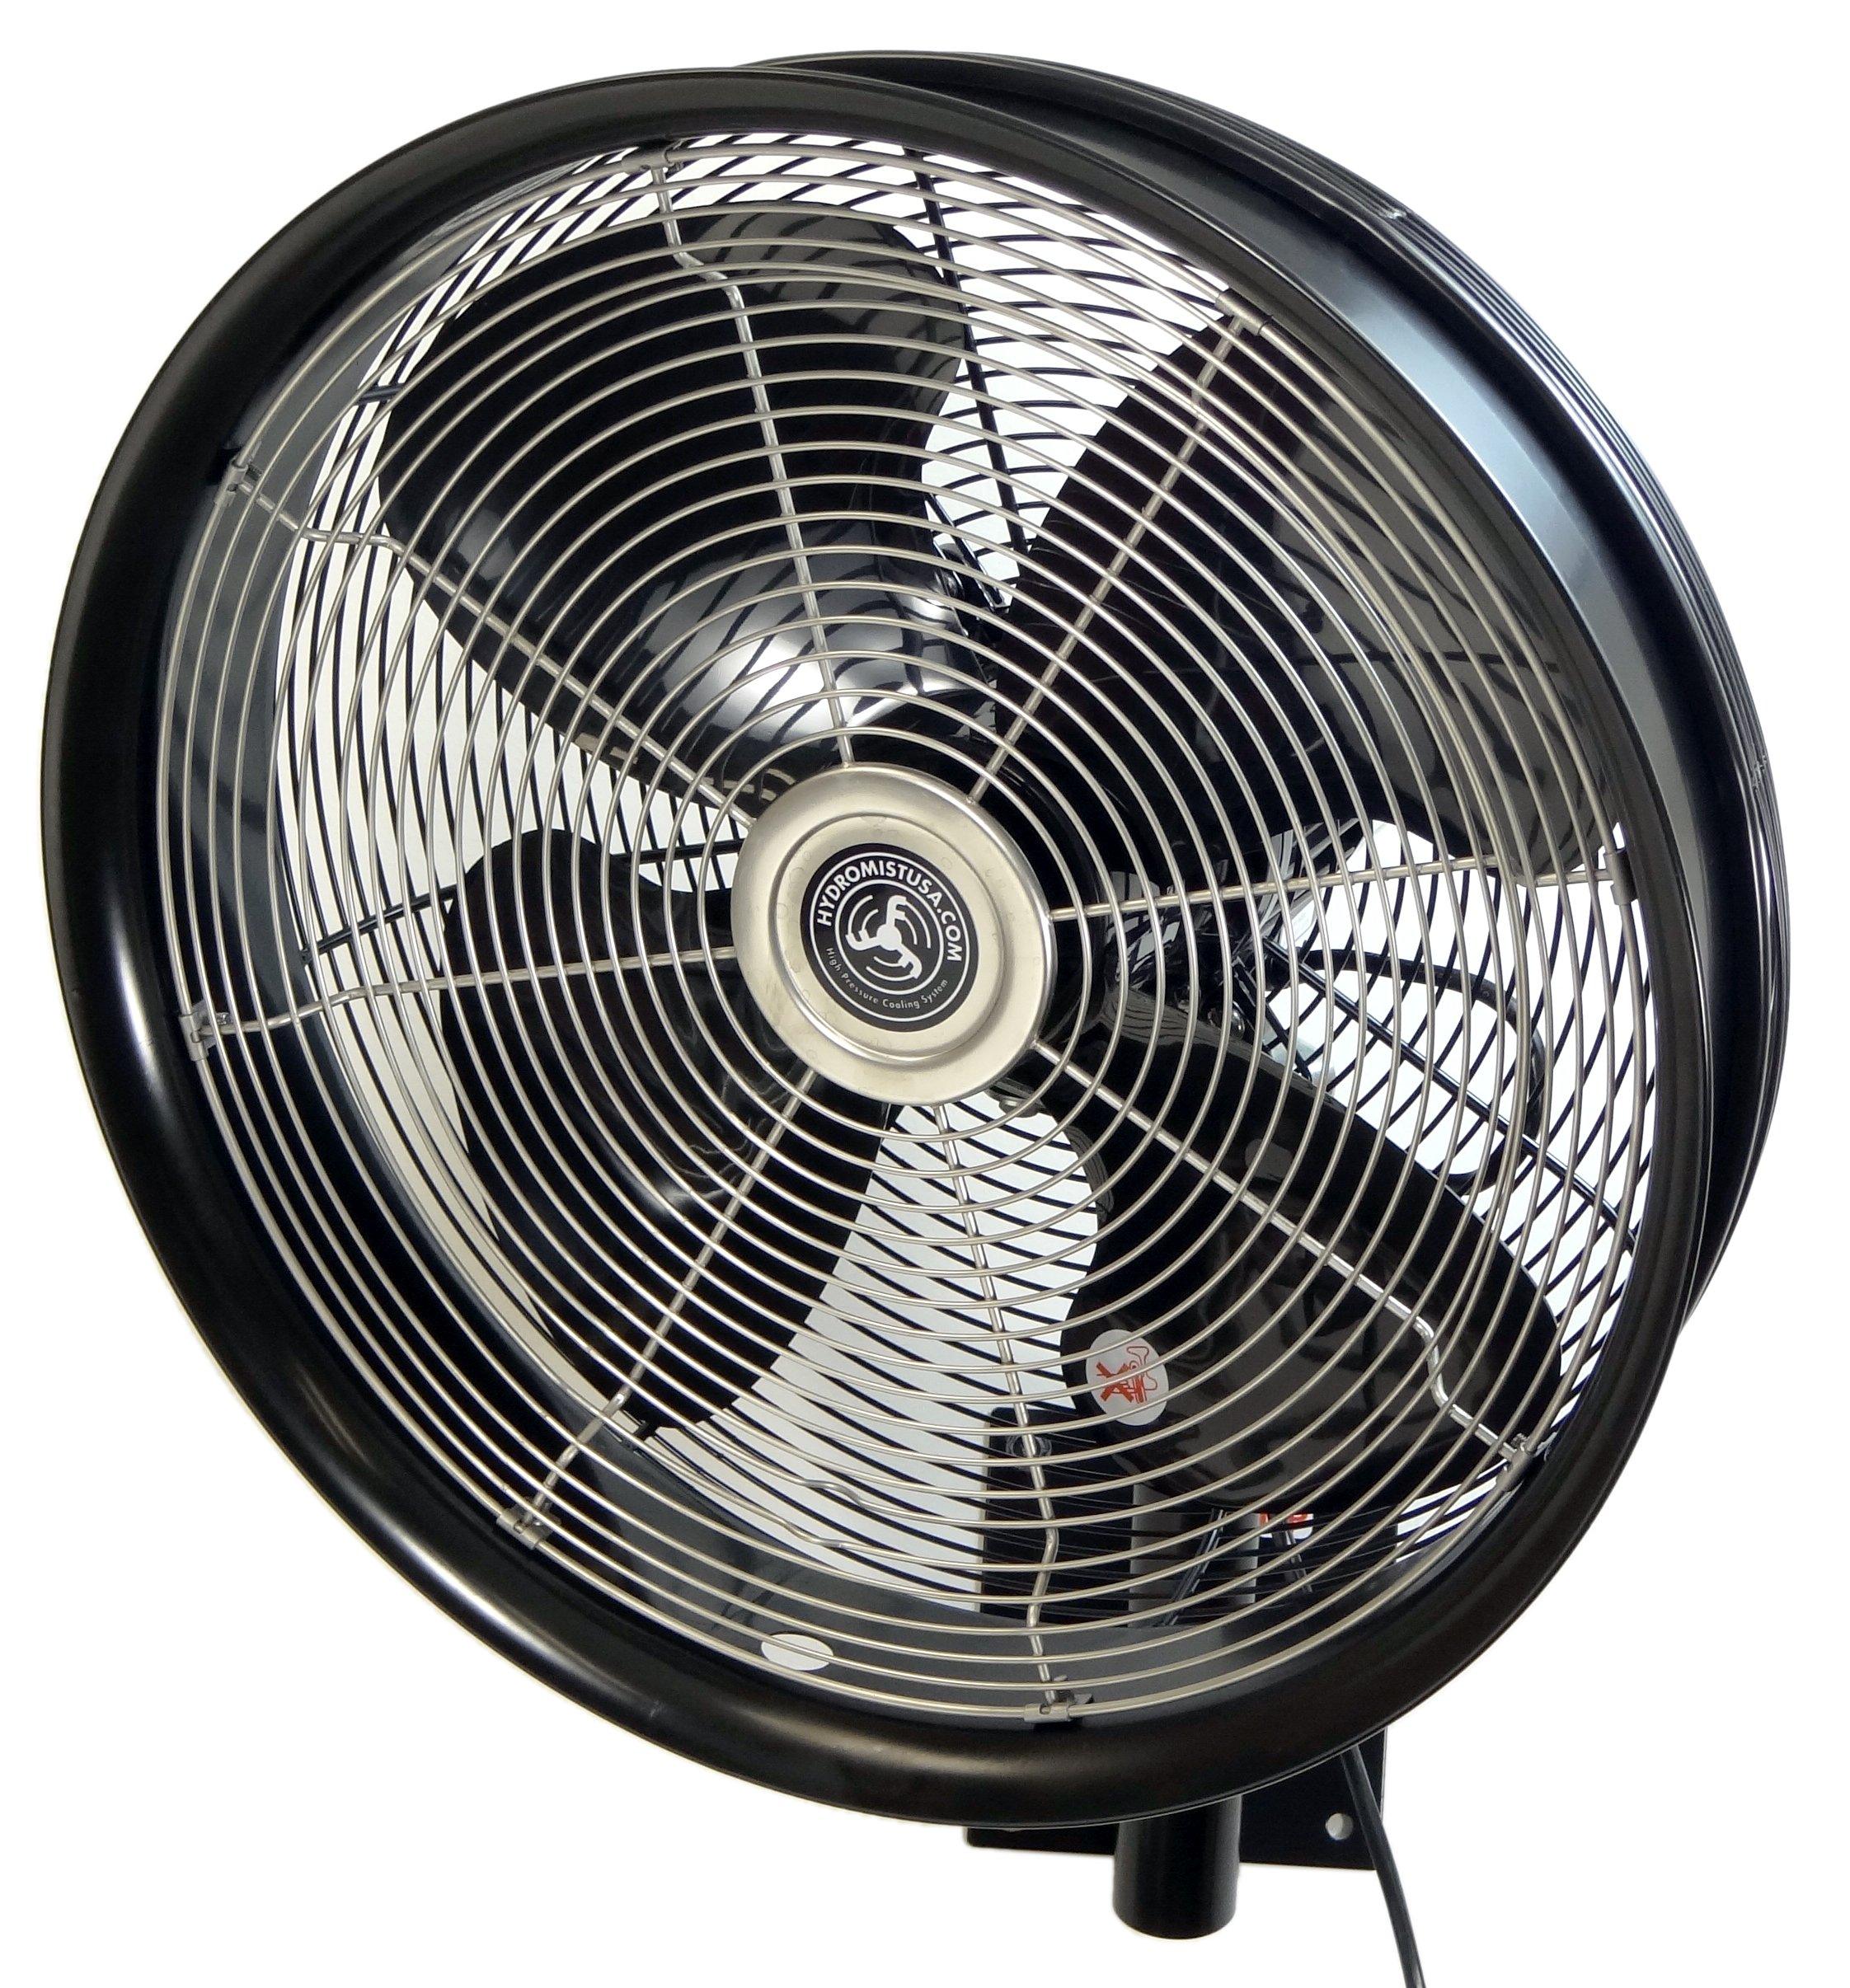 HydroMist F10-14-011 18'' Shrouded Outdoor Wall Mount Oscillating Fan, 3 Speed On Cord, 0.15 HP, 1.05 Amps, Black